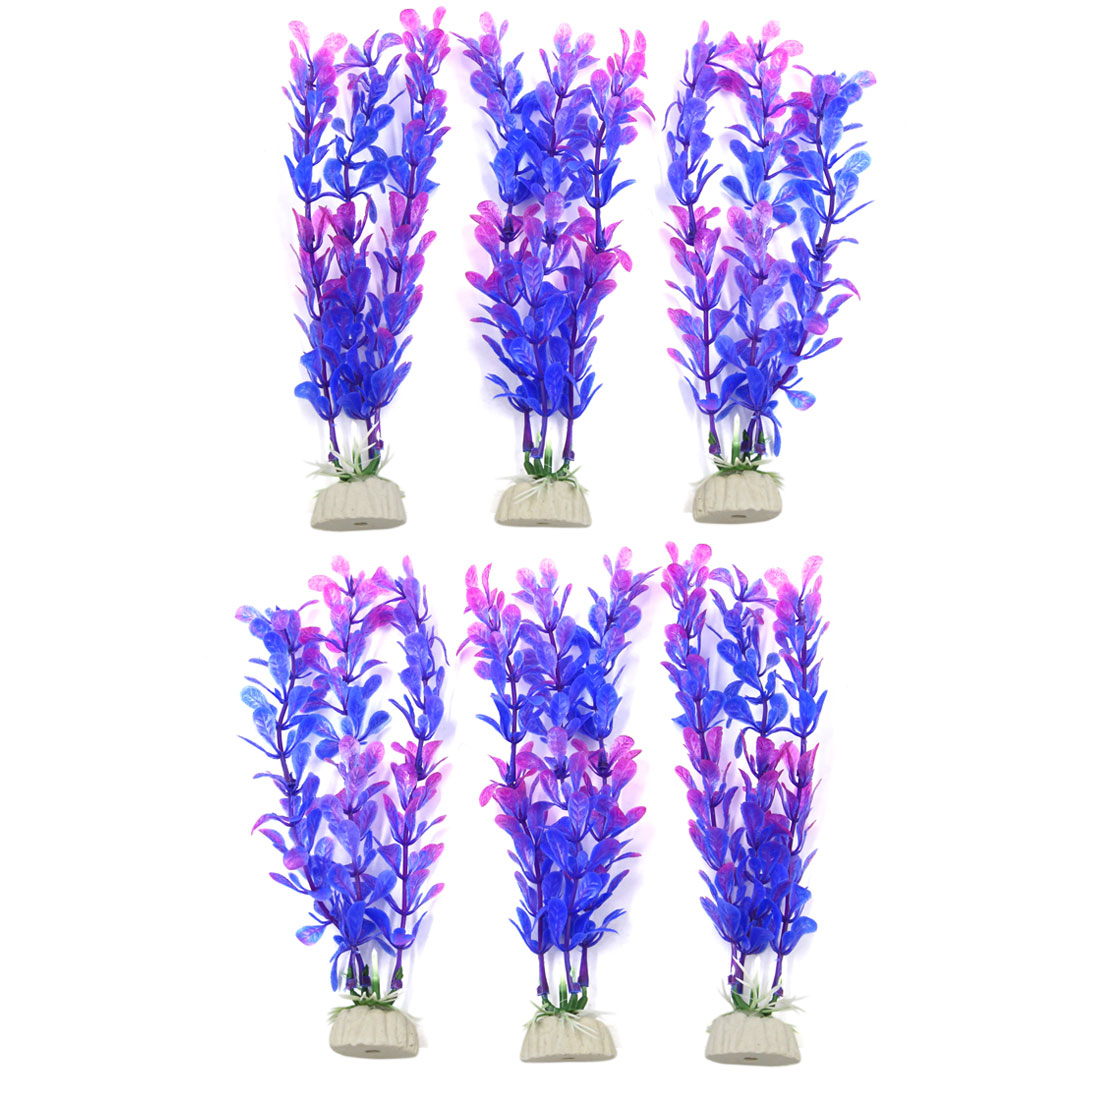 6 Pcs Purple Plastic Aquarium Grass Plants Fish Tank Water Plant Decor Landscape